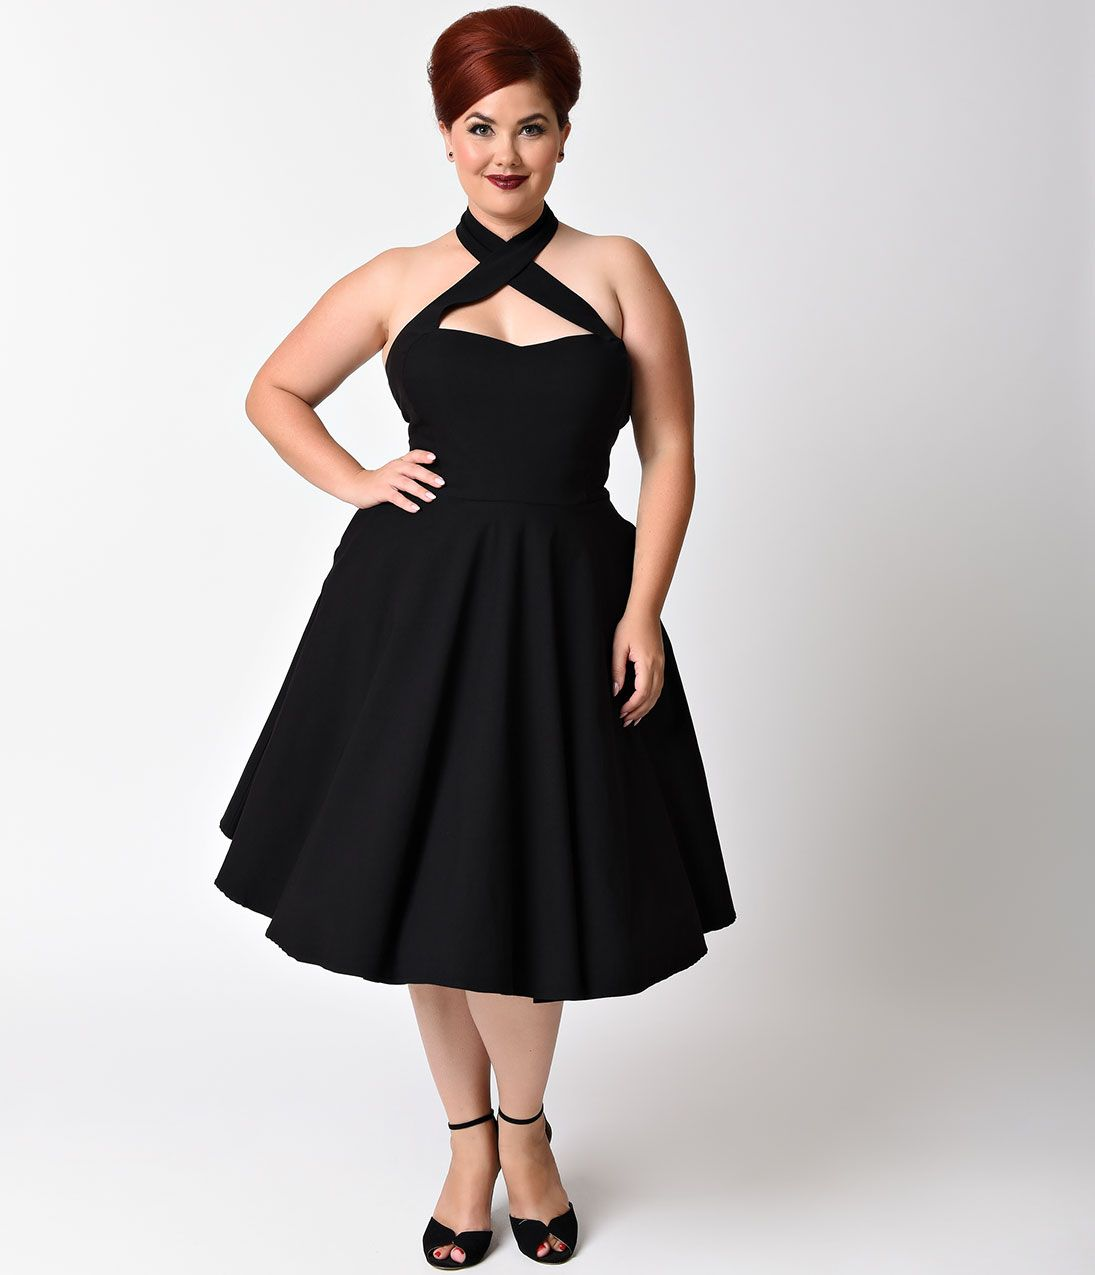 Plus size vintage dresses plus size retro dresses 1950s style unique vintage plus size 1950s style black rita halter flare dress size 4xl 7800 at vintagedancer ombrellifo Gallery